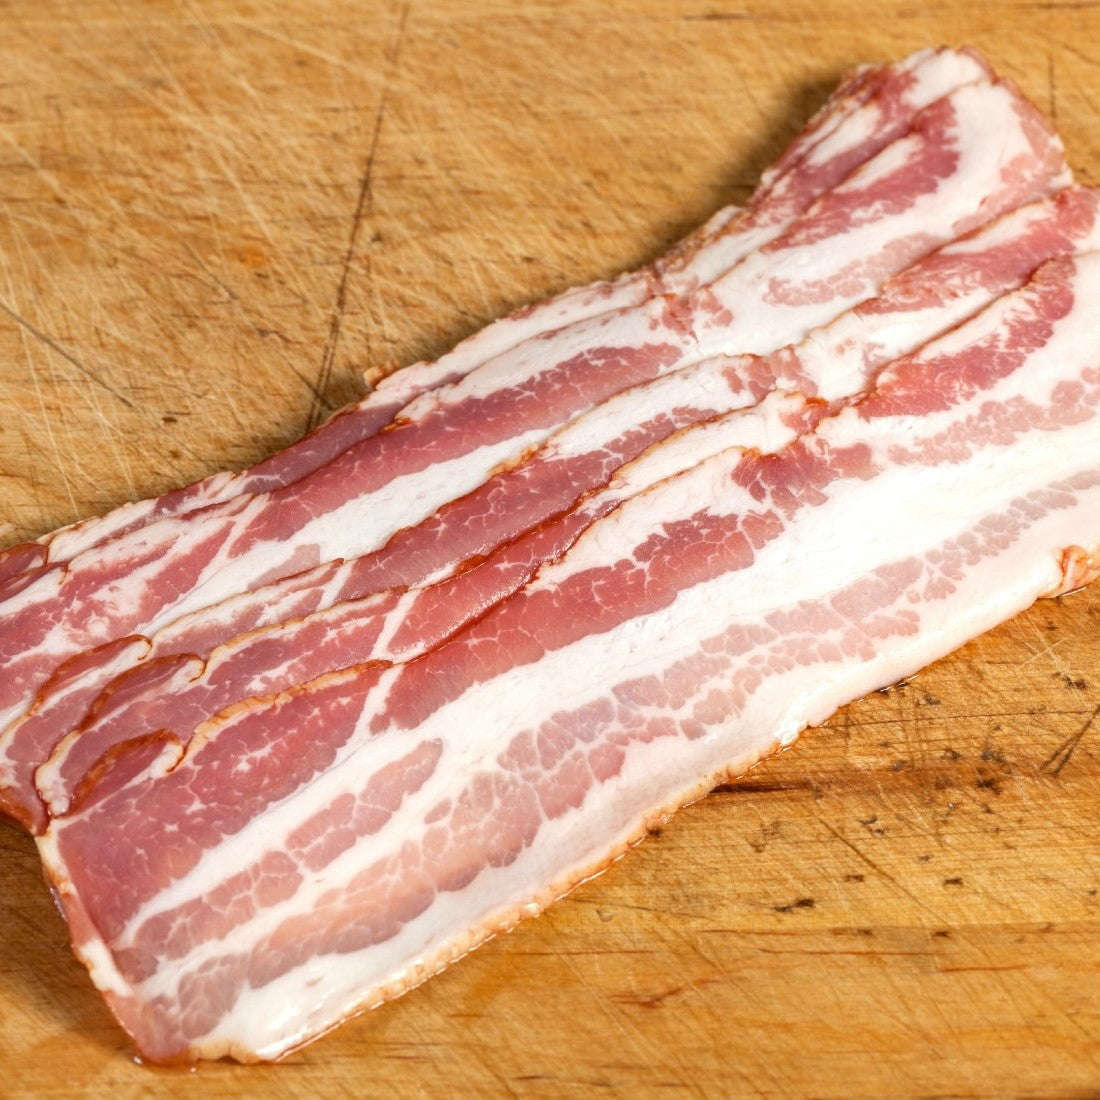 Bacon - Thick Cut